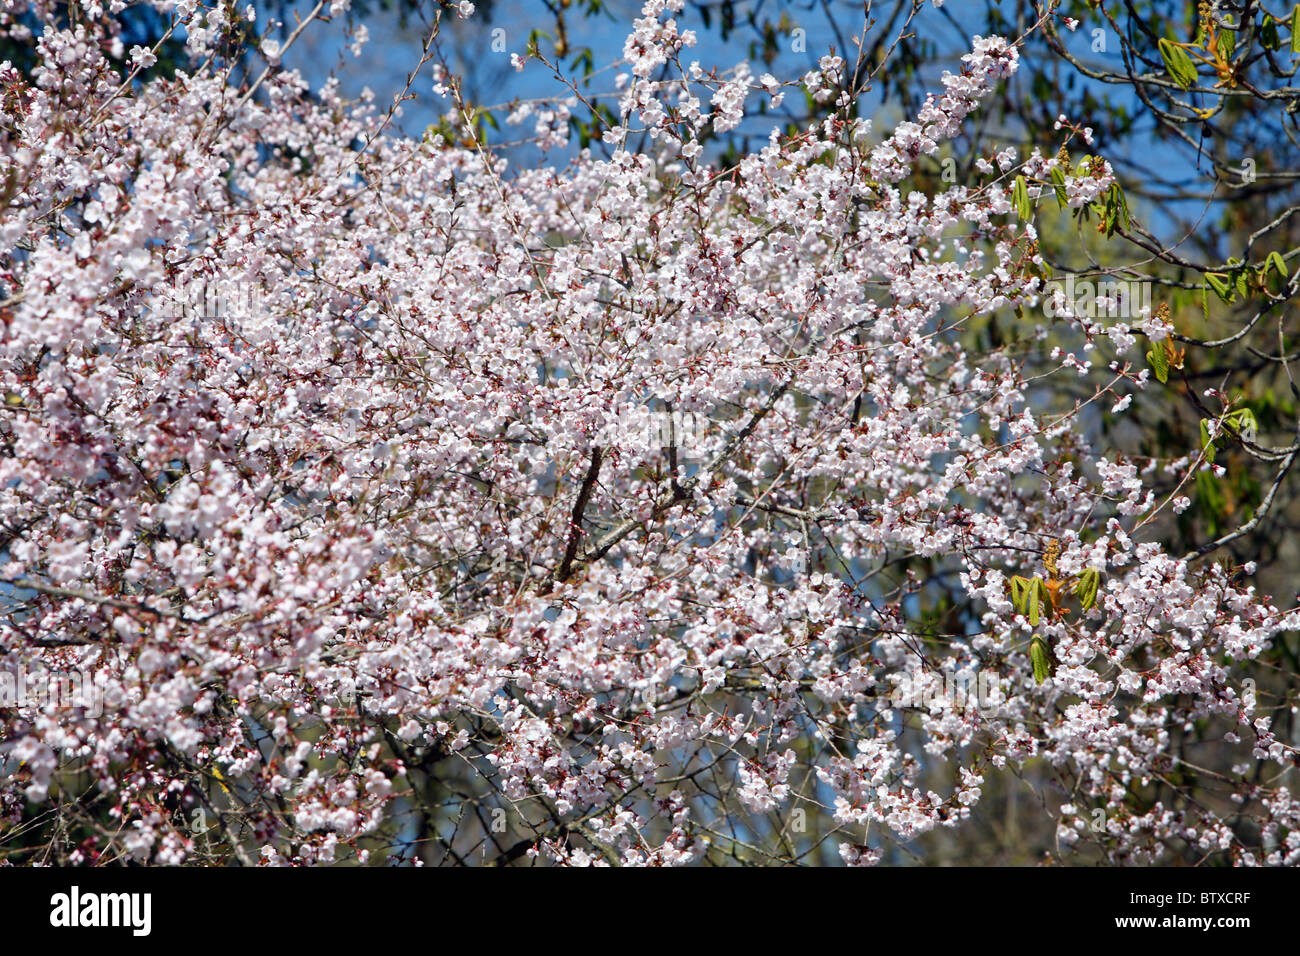 Japanese Cherry Tree (Prunus avium cultivar), blossom in springtime, Germany - Stock Image